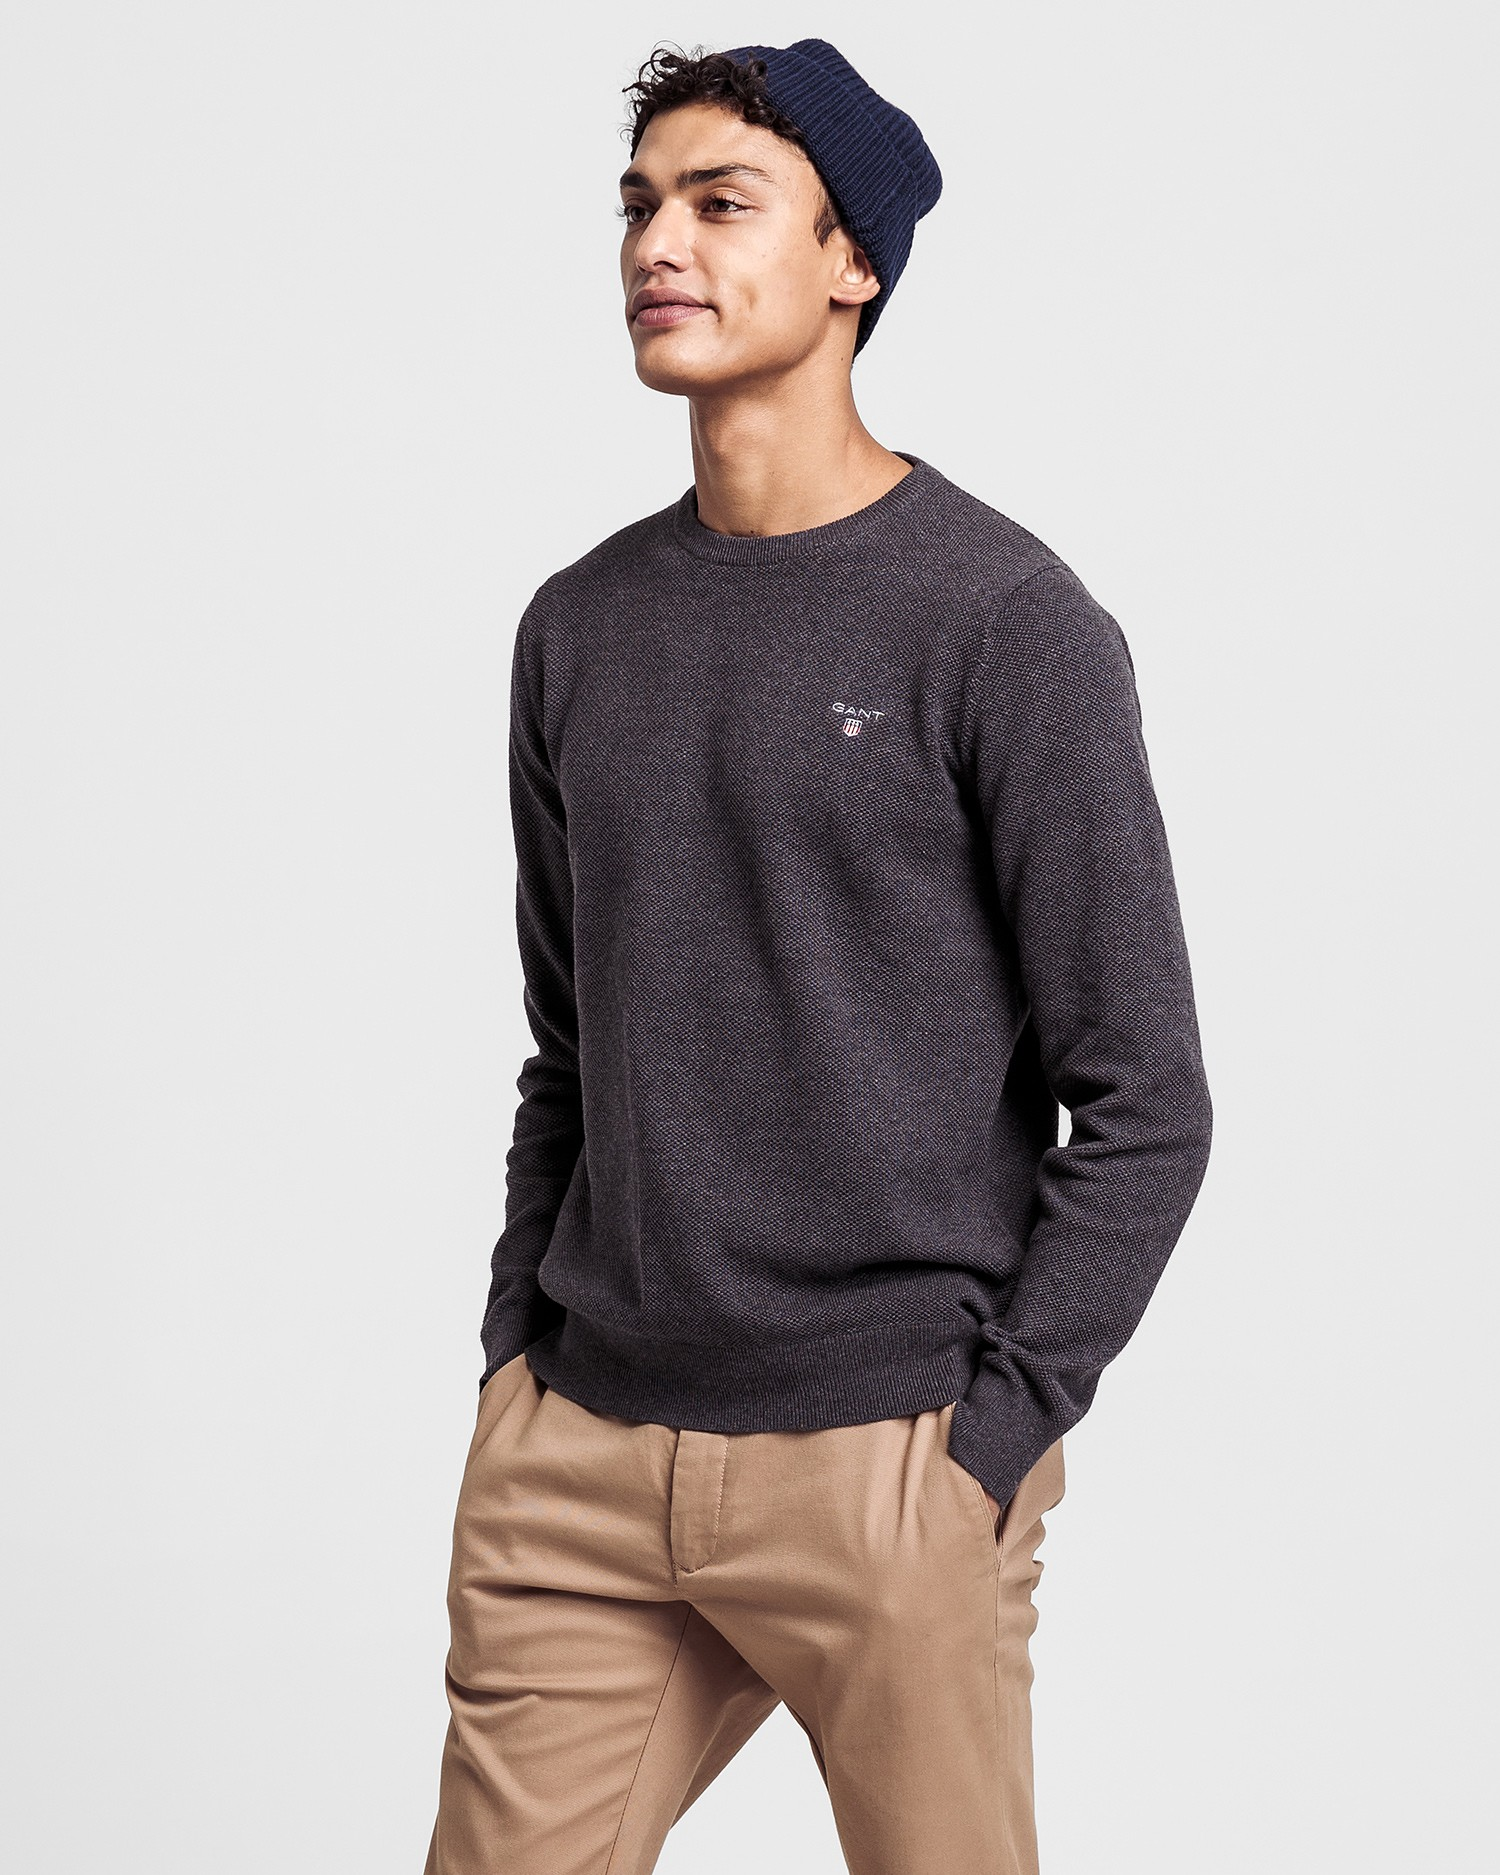 GANT Men's Cotton Pique Sweater - 80021